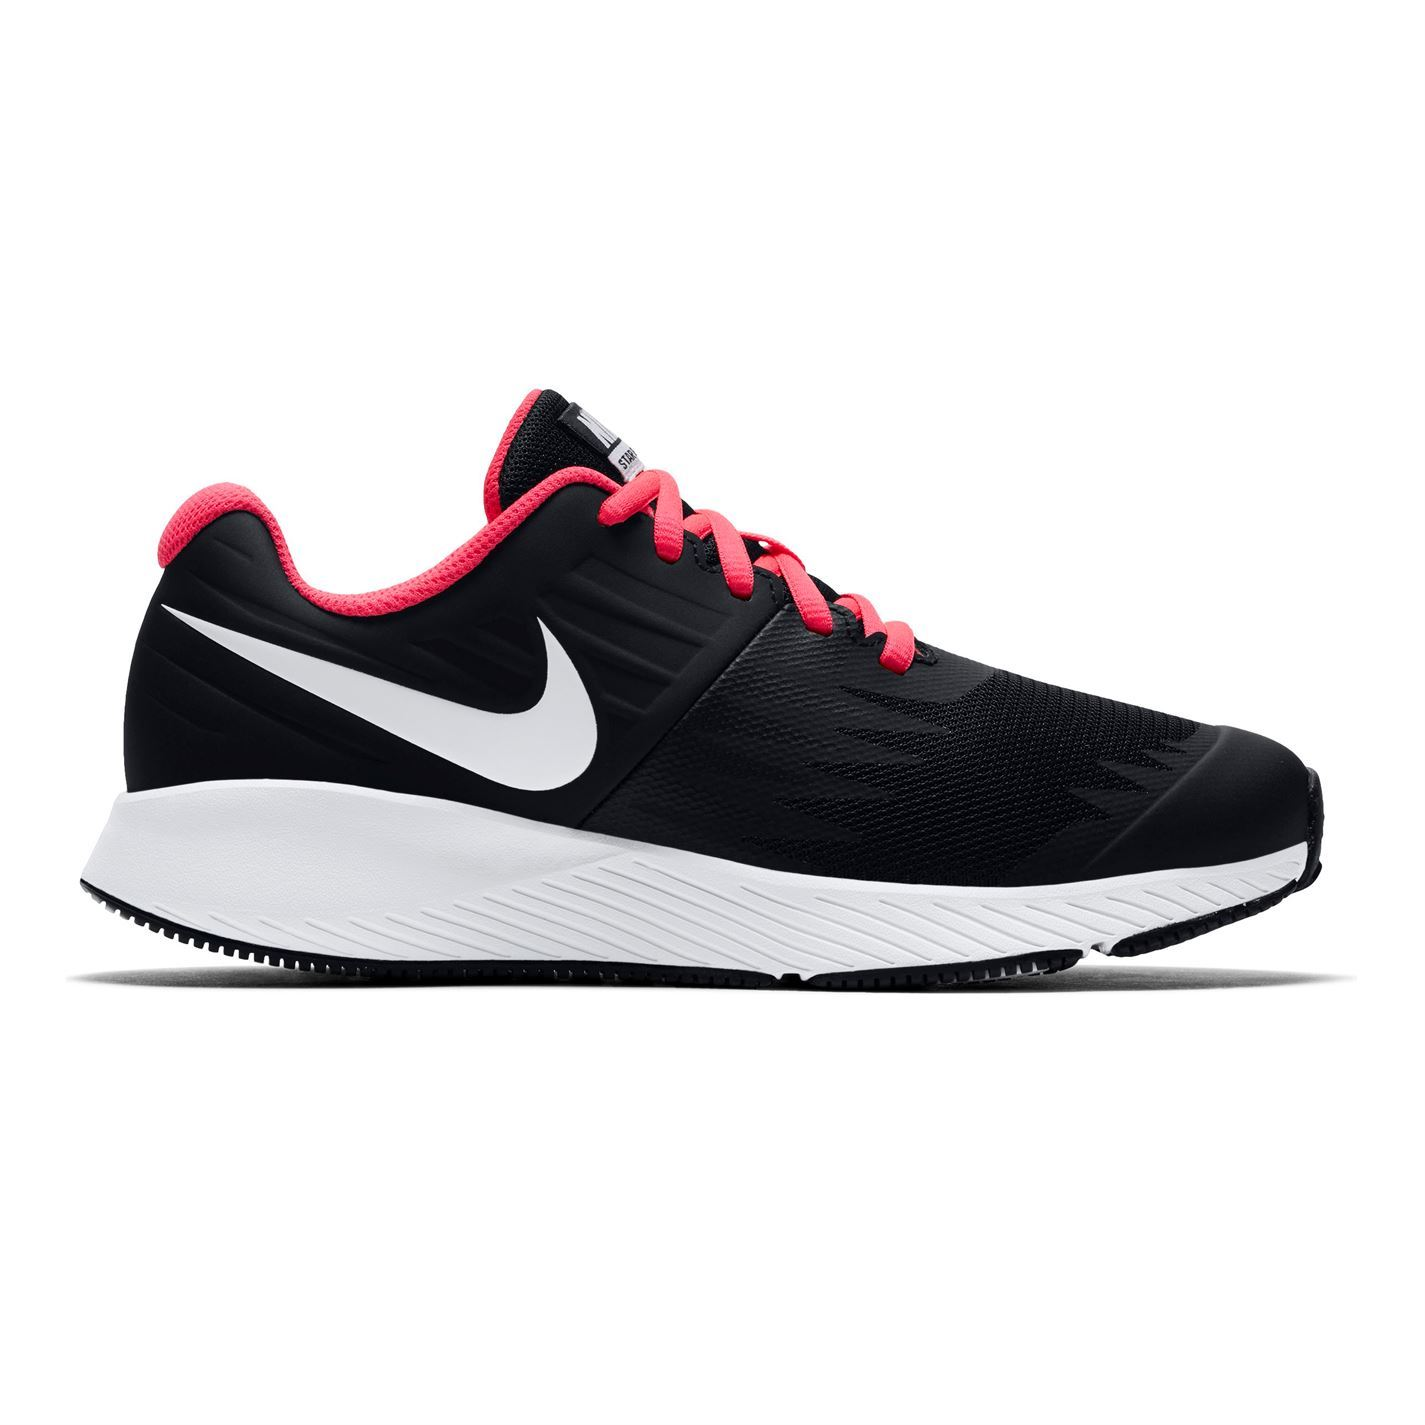 piuttosto bella autentico 2019 autentico Nike Star Runner Infants Trainers Girls Black/White/Pink Shoes ...